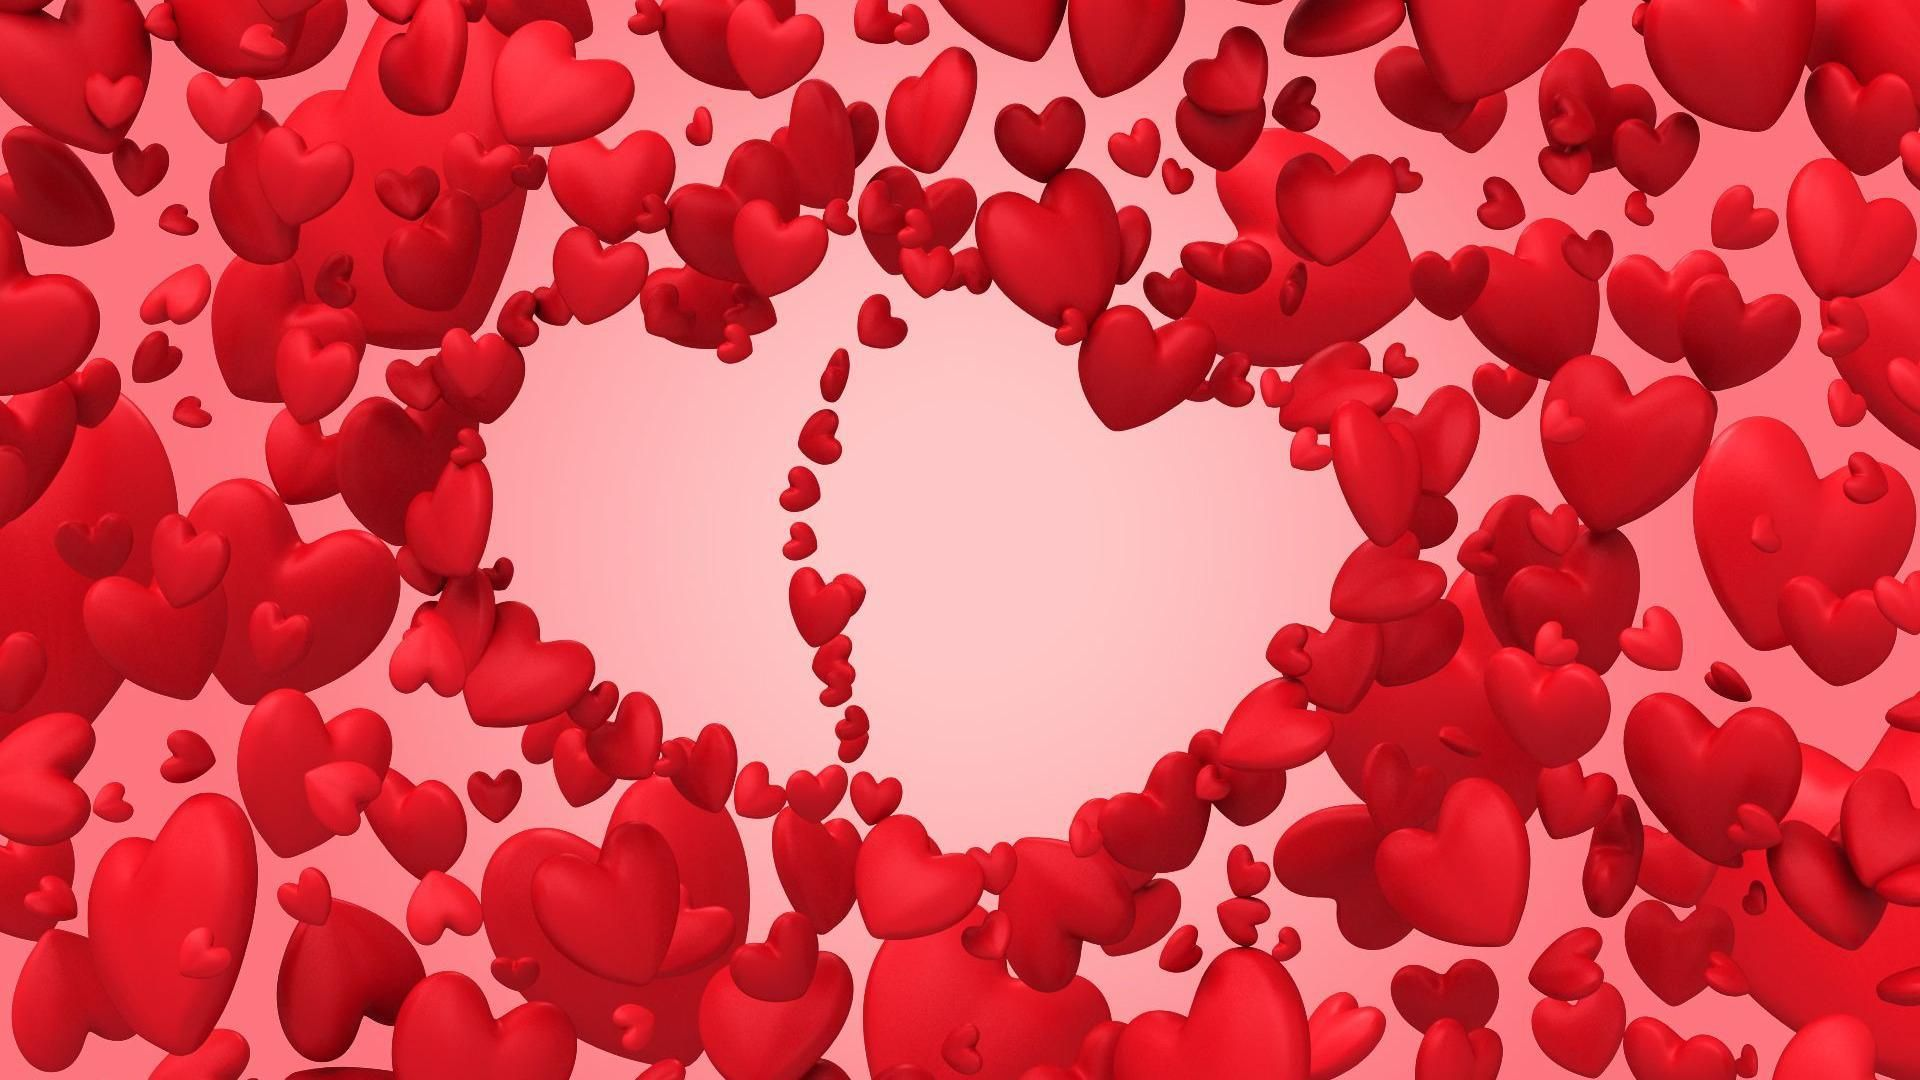 Love Pics Images Of Hearts And Kisses Day Heart Wallpapers HD 1920x1080